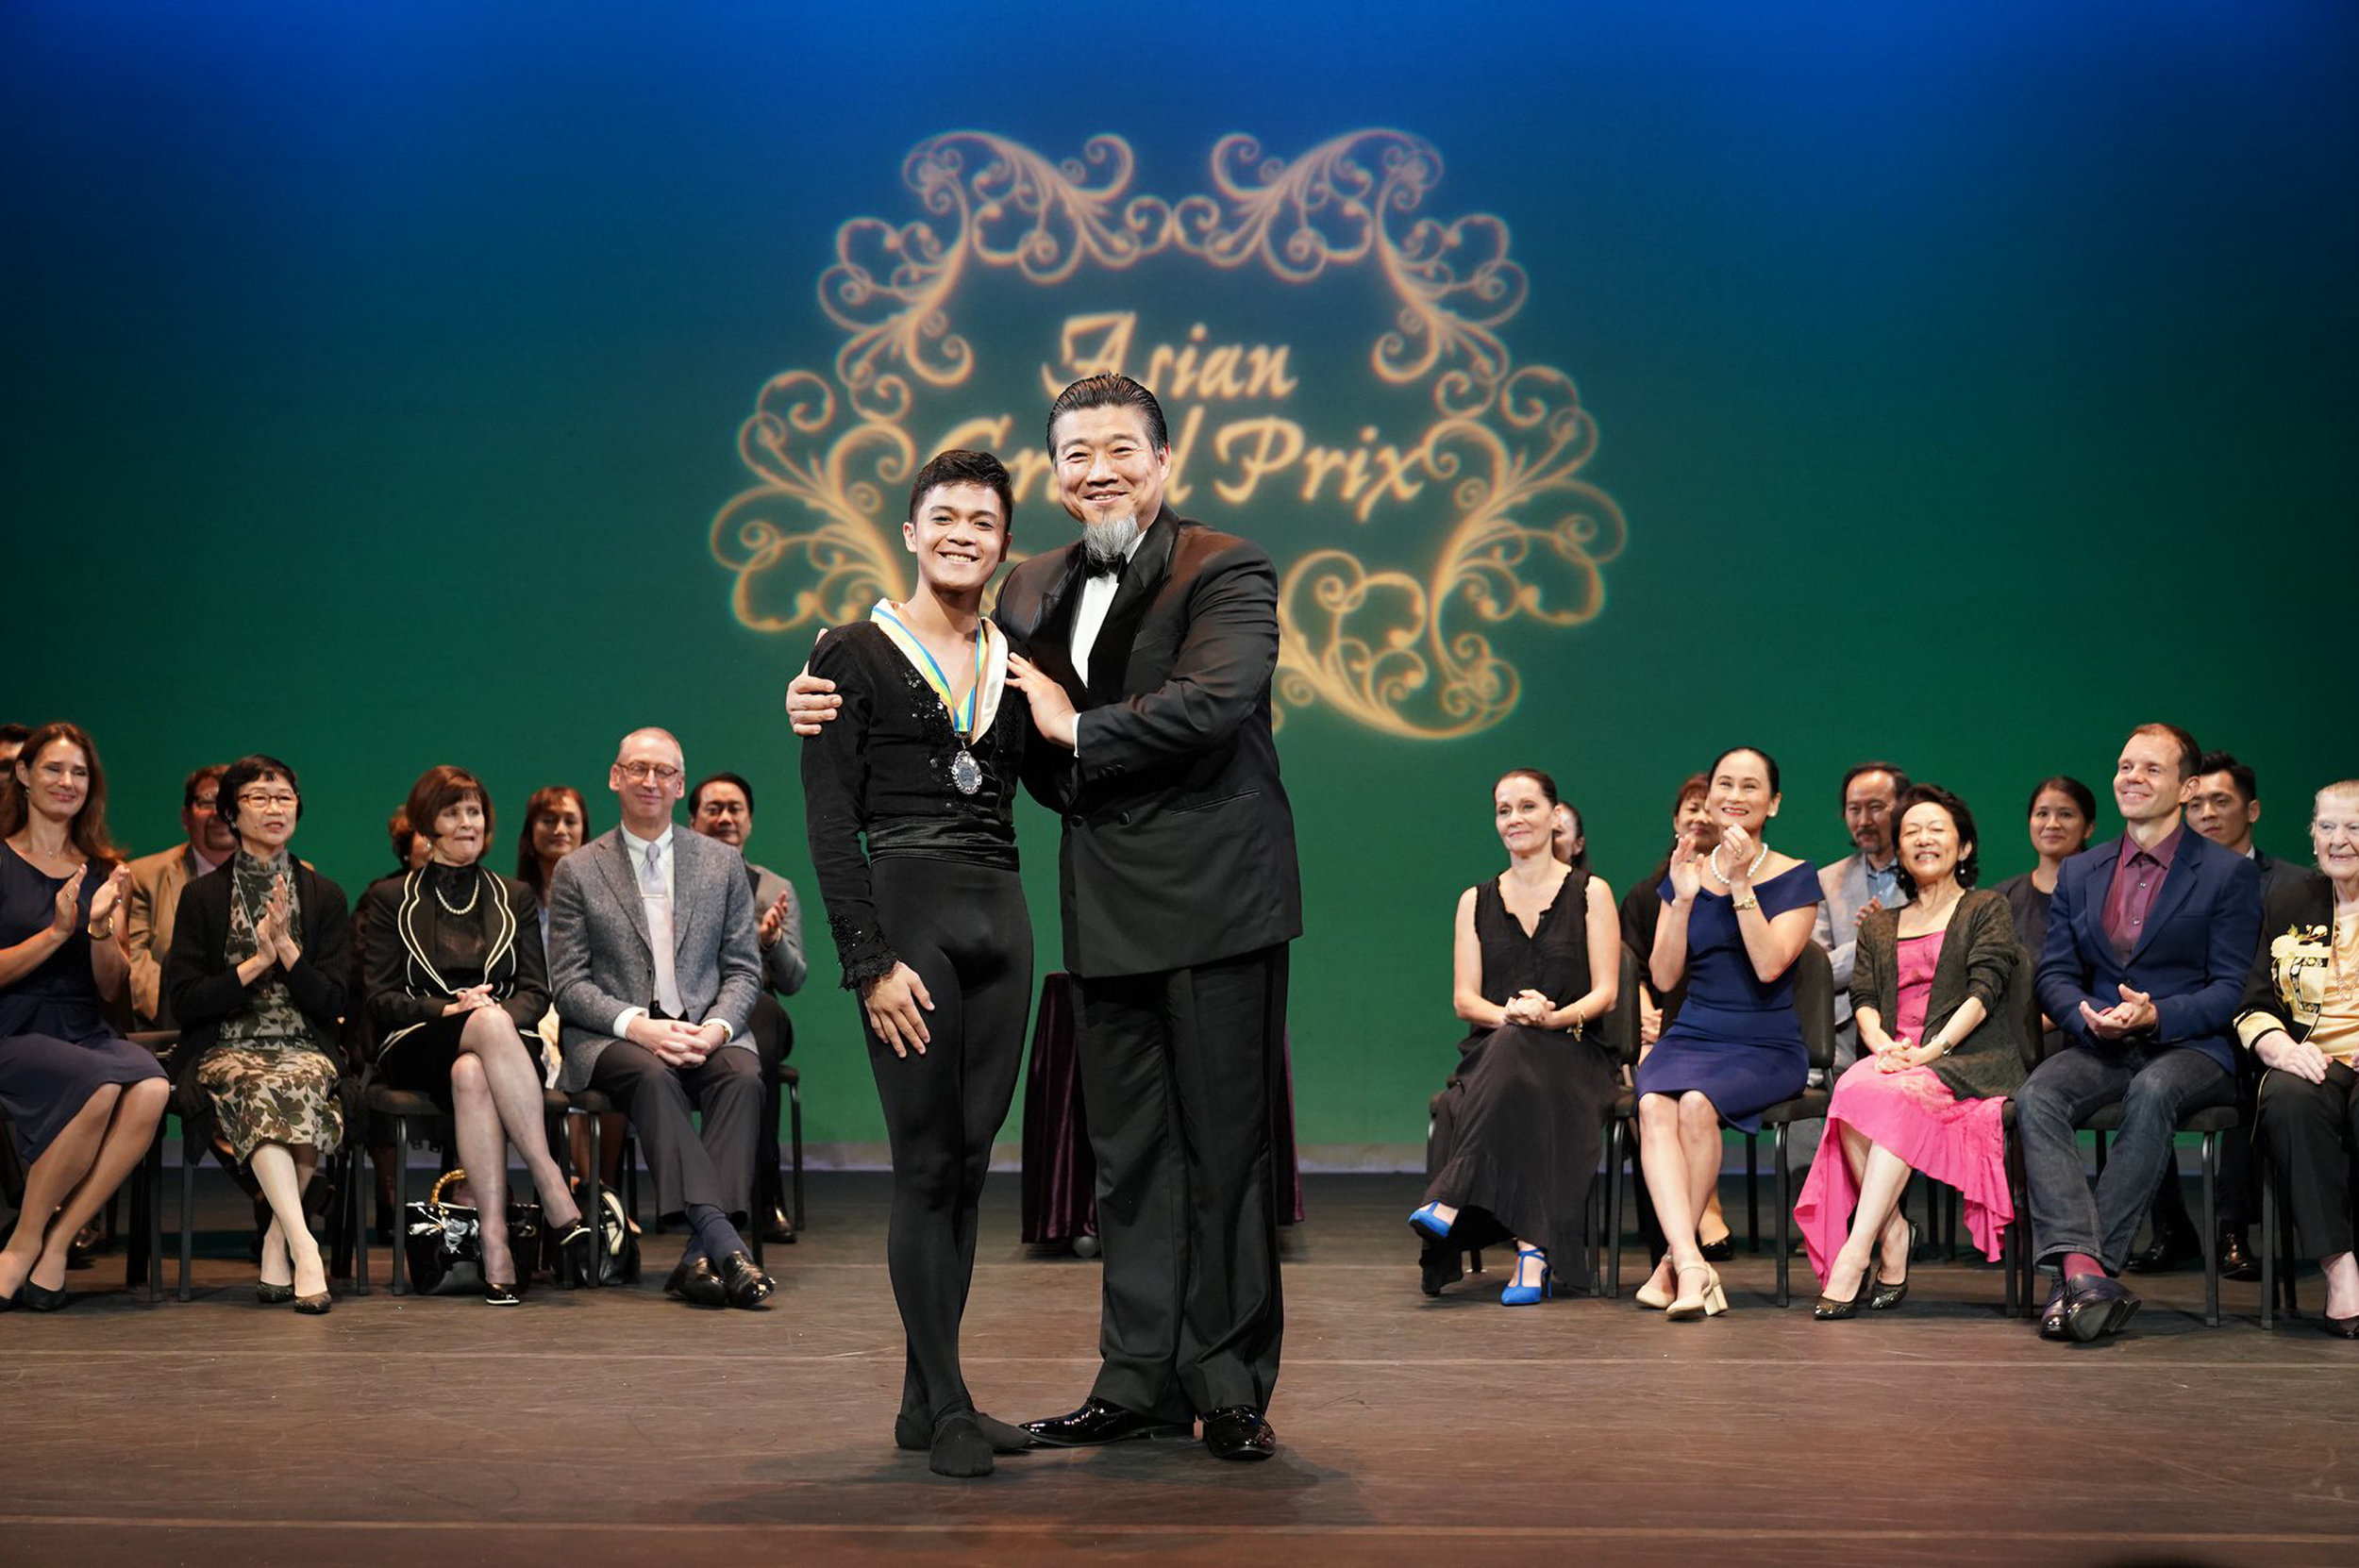 Rafael Perez receives his Senior silver medal from Asian Grand Prix juror Jae Keun Park in last August's awarding program in Hong Kong. He tied with Japanese ballerina Yuko Nojo. Photo courtesy of Asian Grand Prix